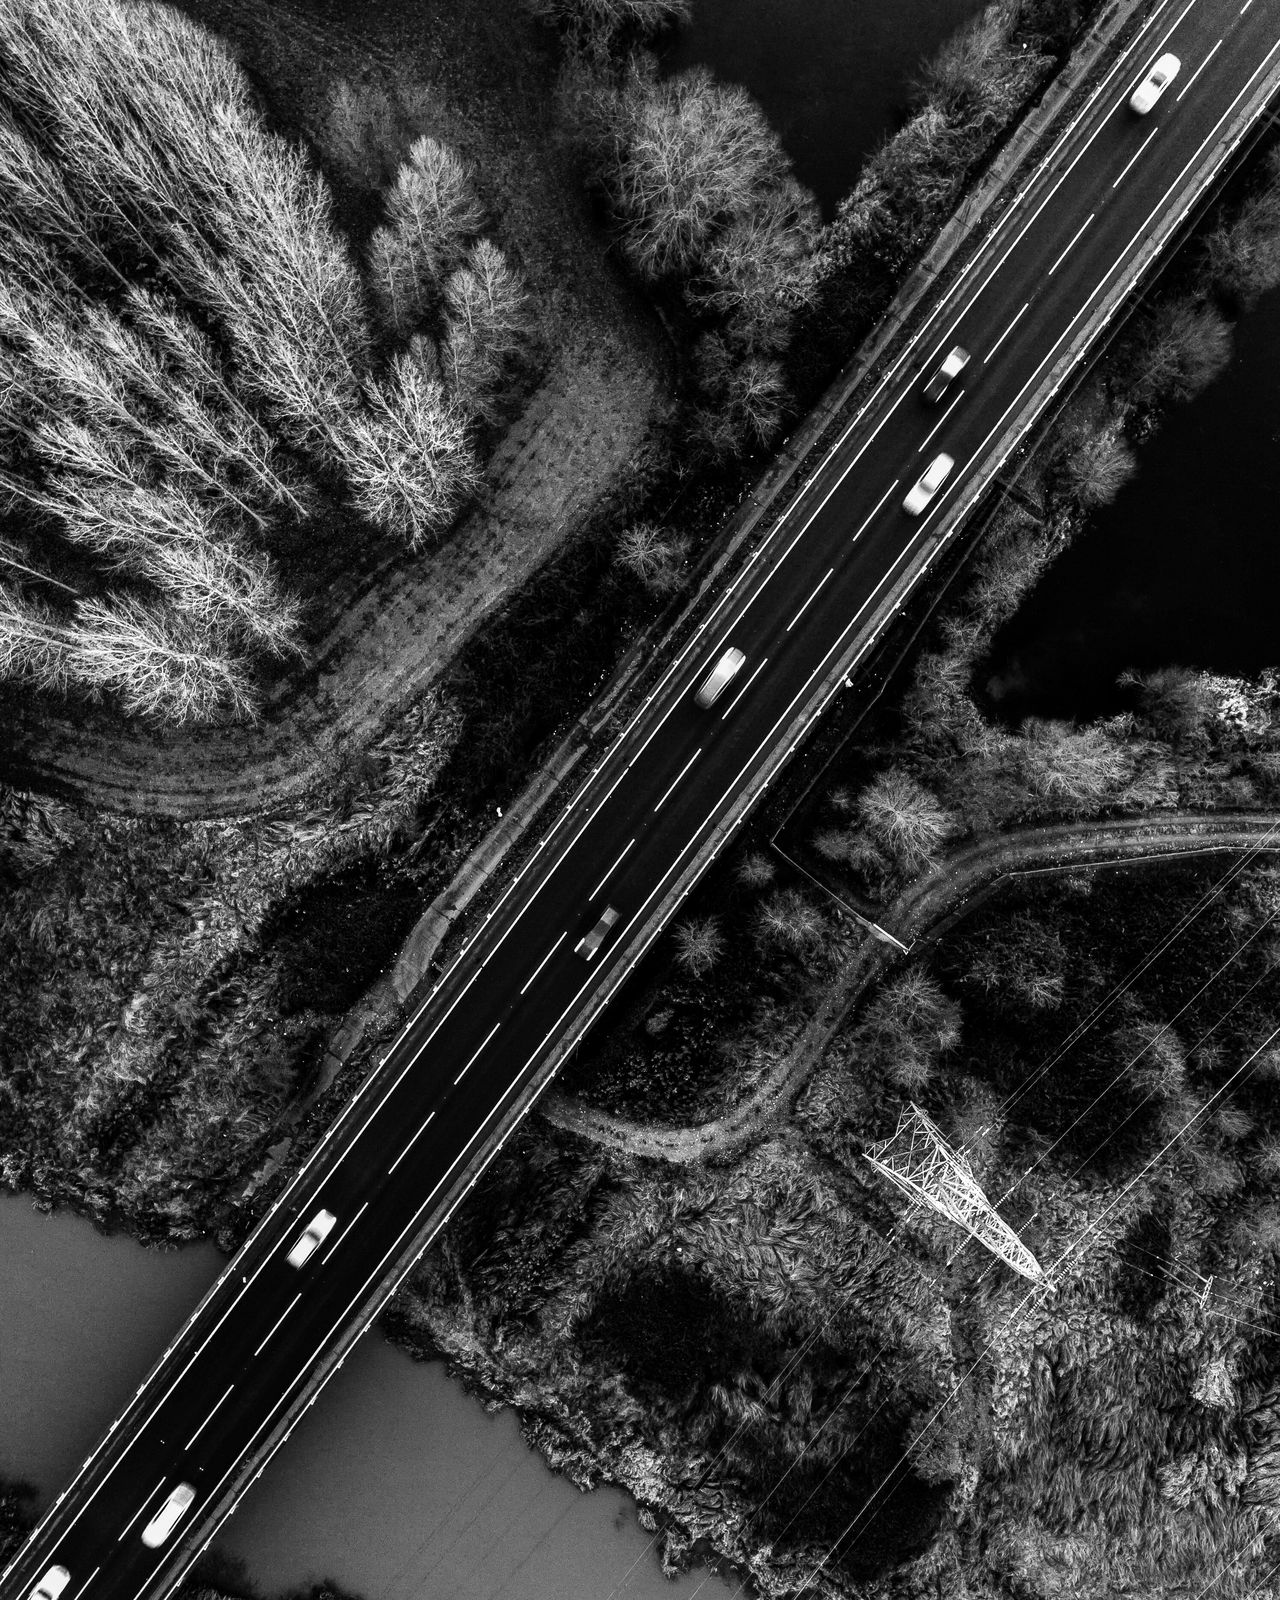 B&W Dji Aerial View Urban Geometry Epic Drone  Phantom 4 Aerial Aerial Photography Architecture Dronephotography Road High Angle View Beauty In Nature Flying High